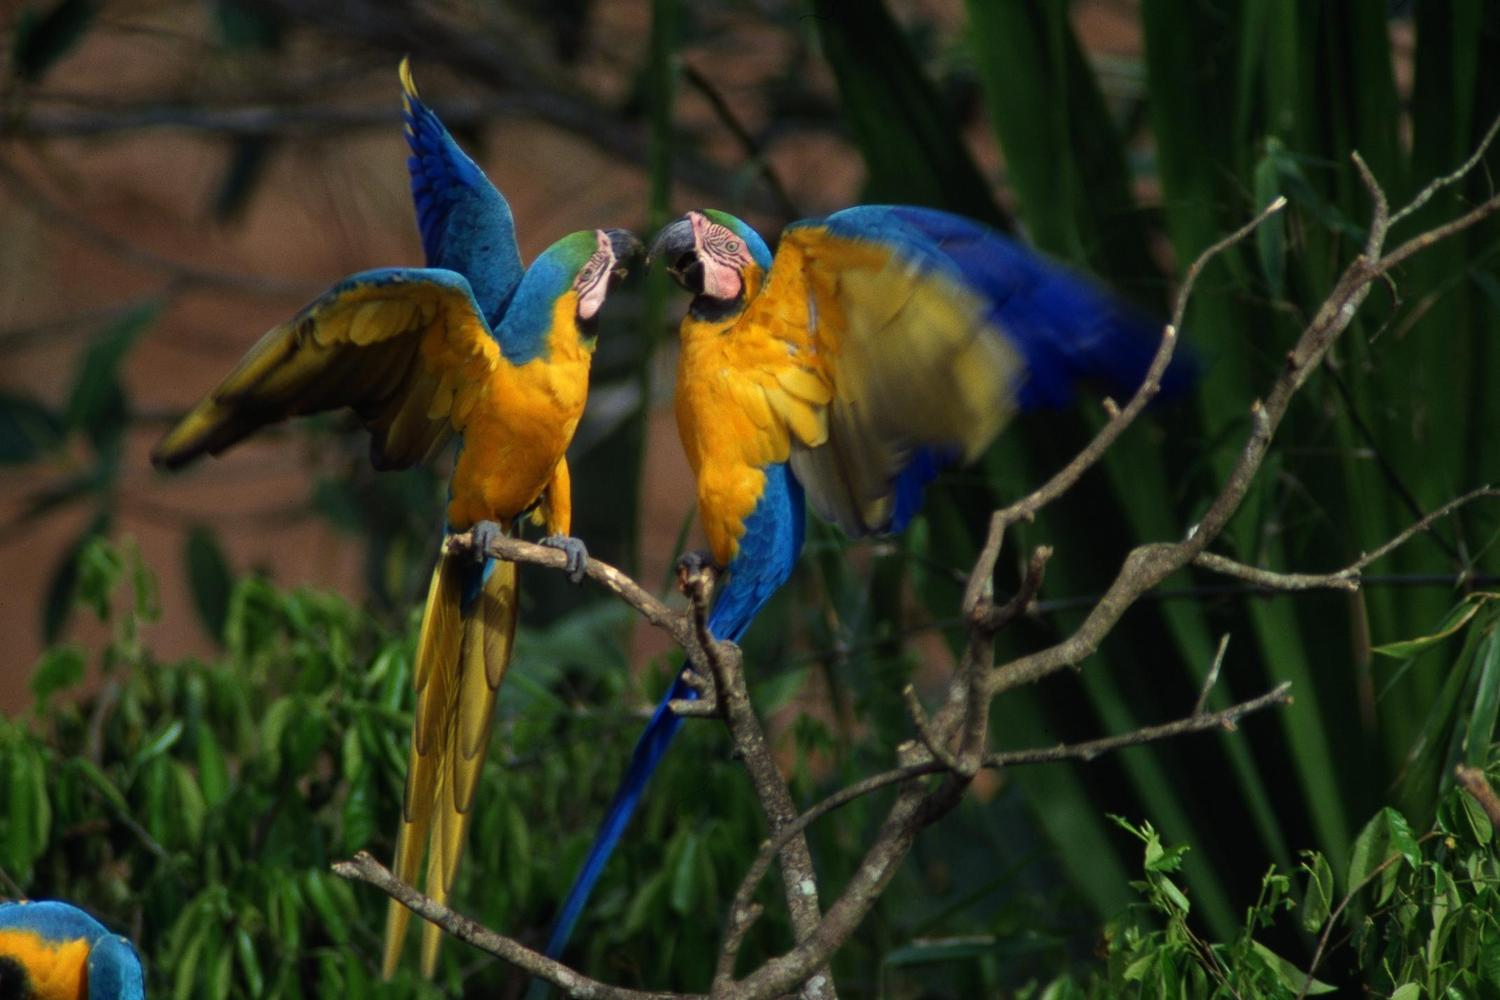 Blue and yellow macaw squabbling